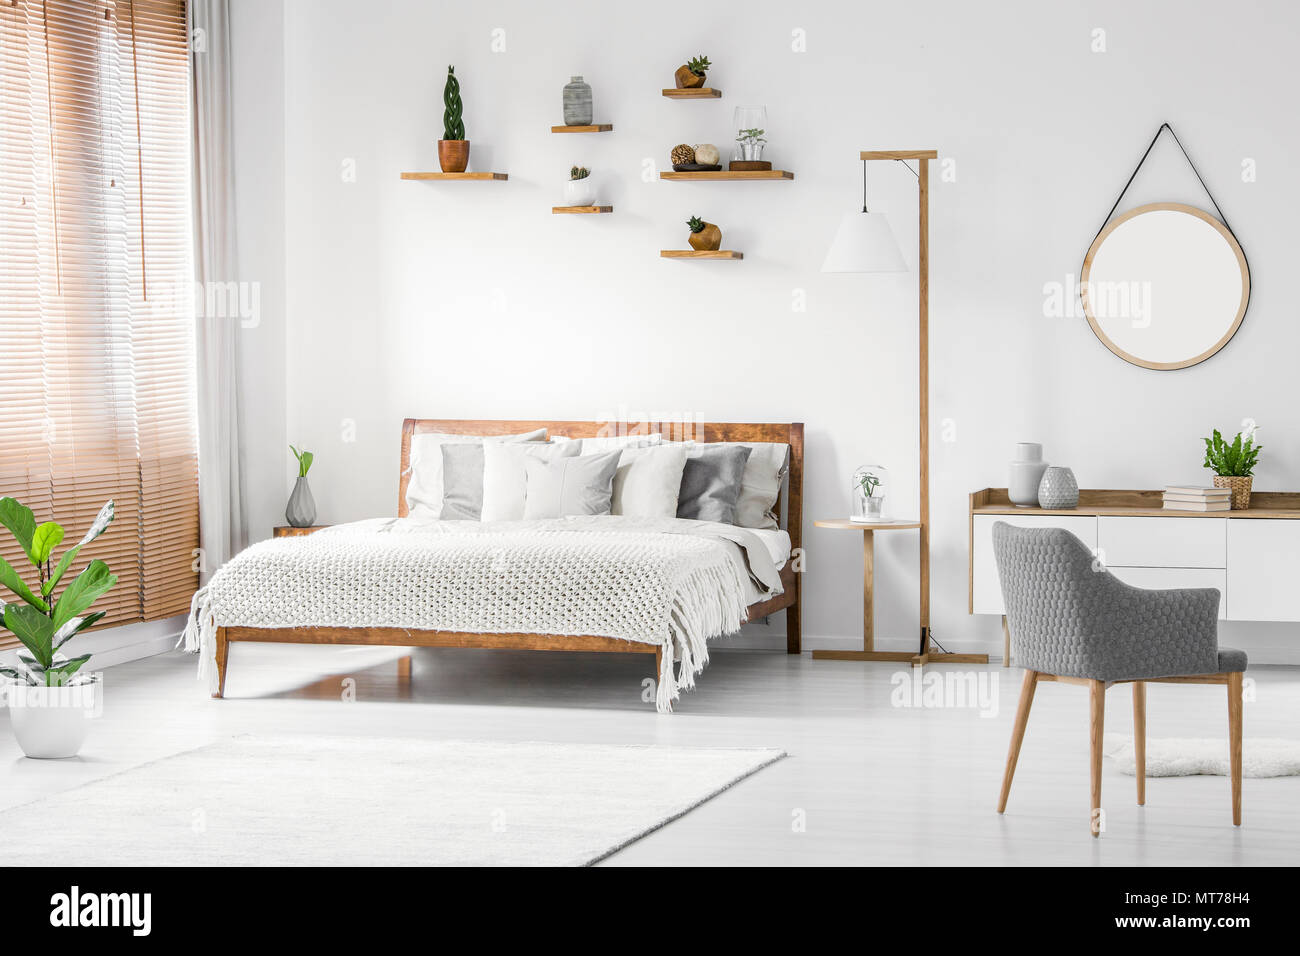 Front View Of A Bright Natural Bedroom Interior With Wooden